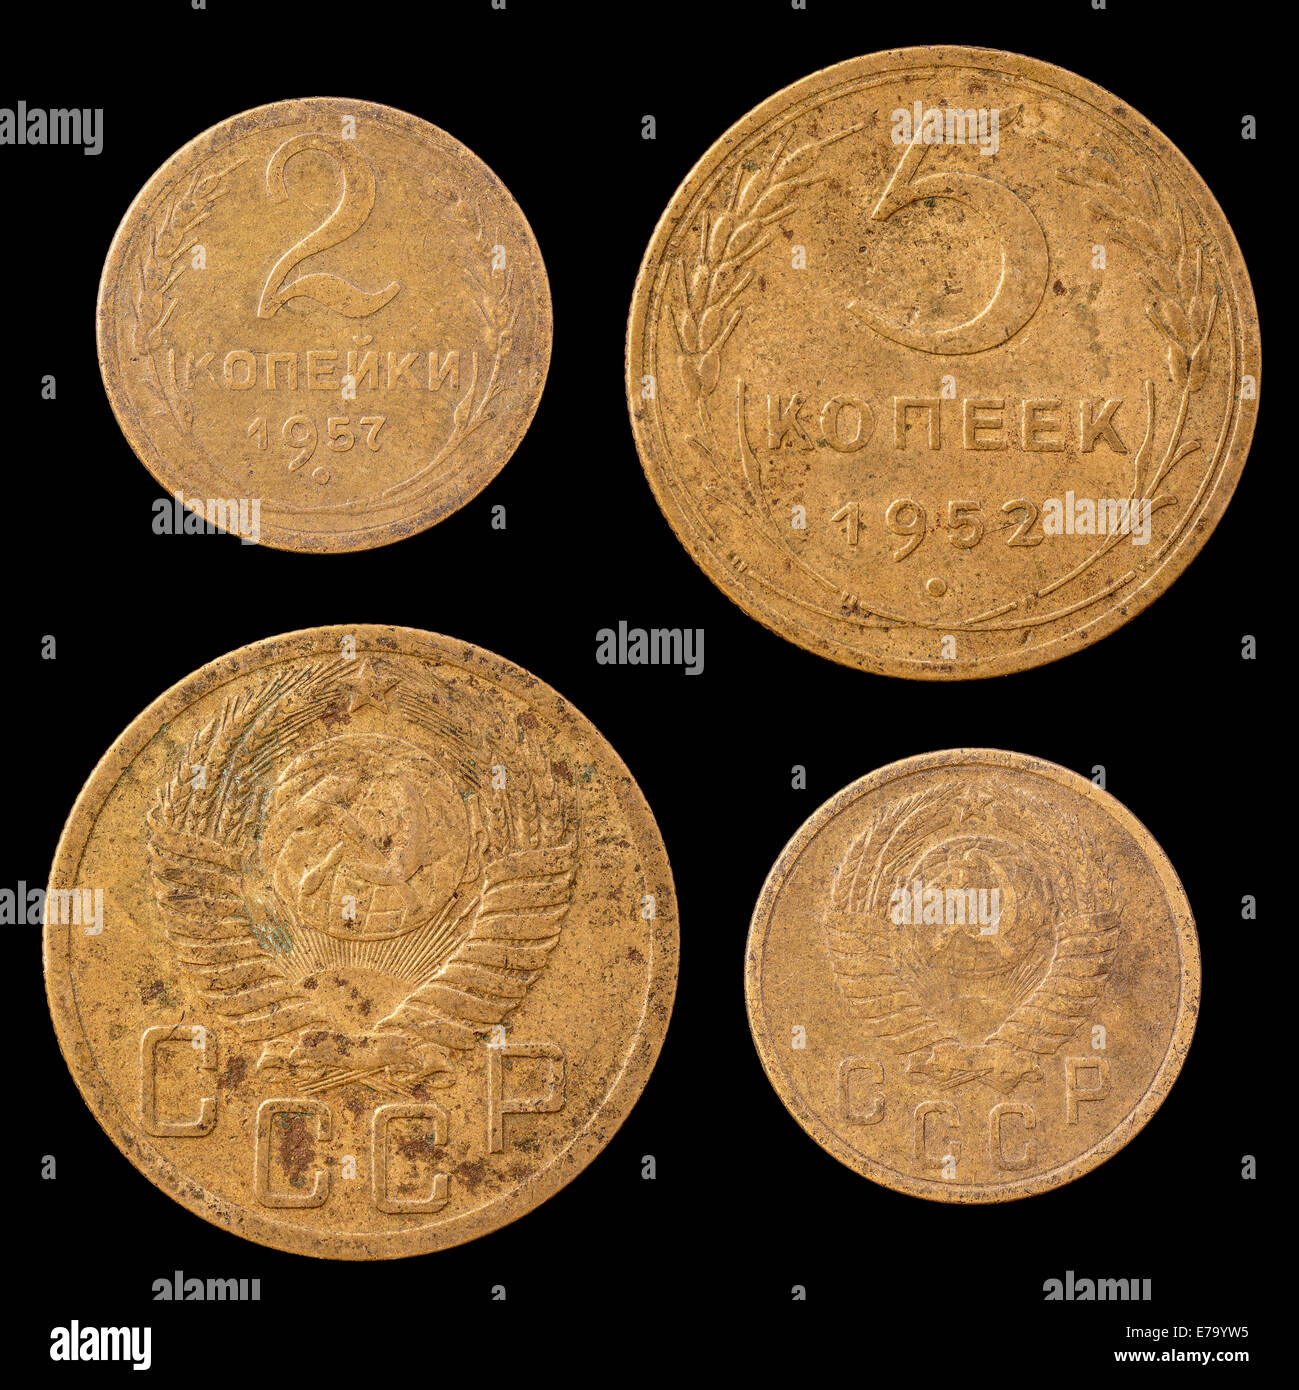 Two Soviet Union Coins on a Black Background. - Stock Image